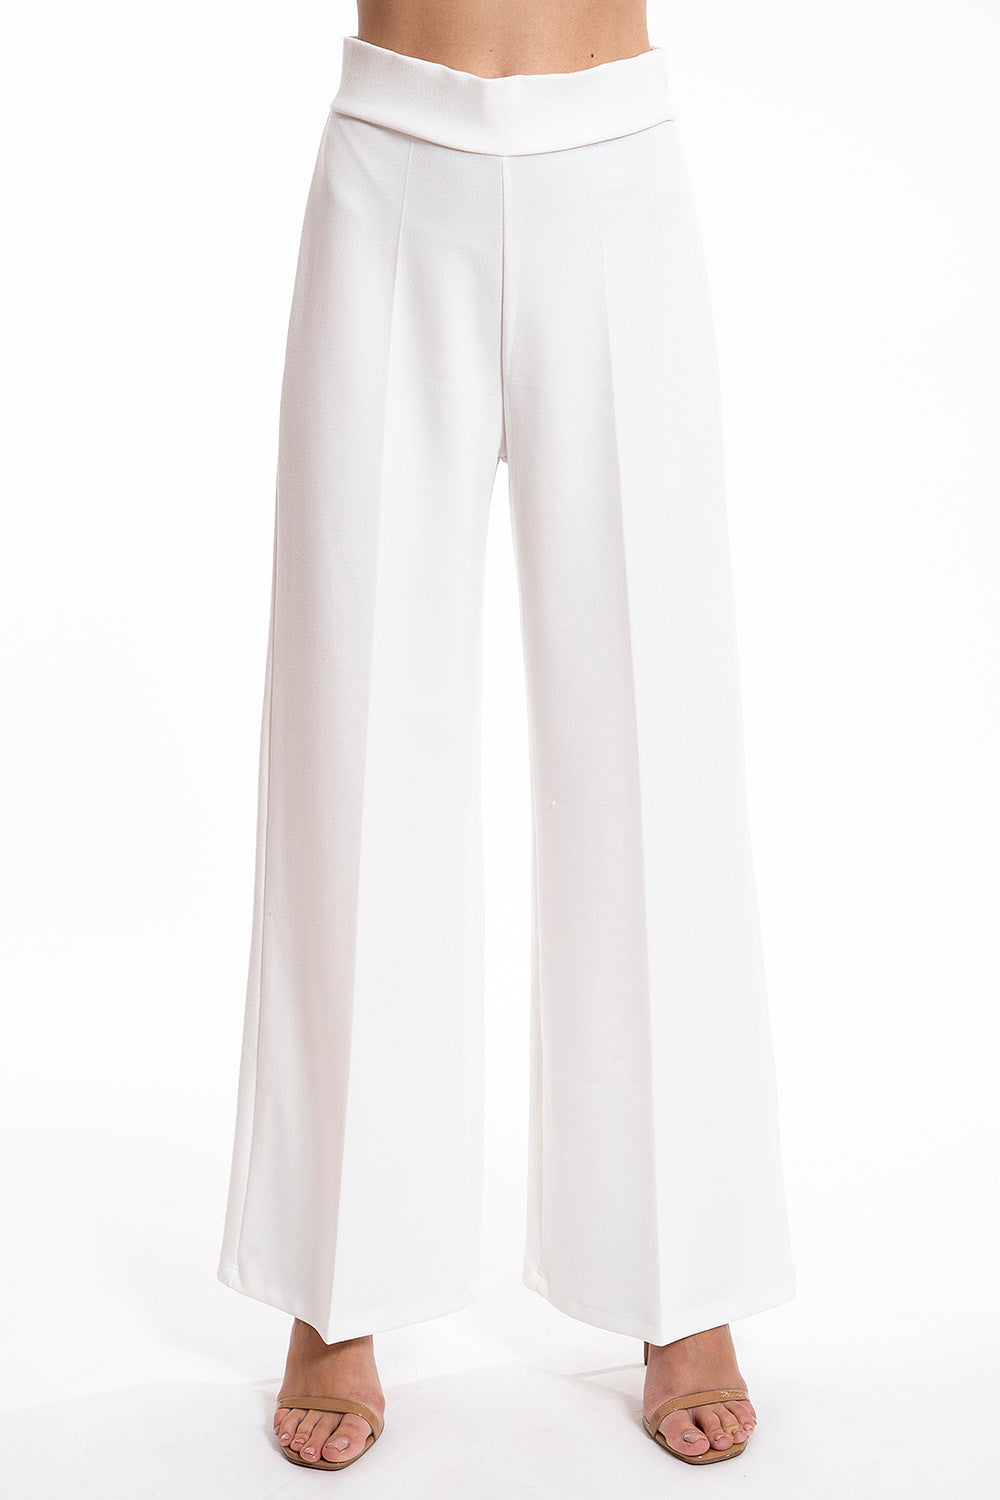 Eiki pull on wide leg trousers